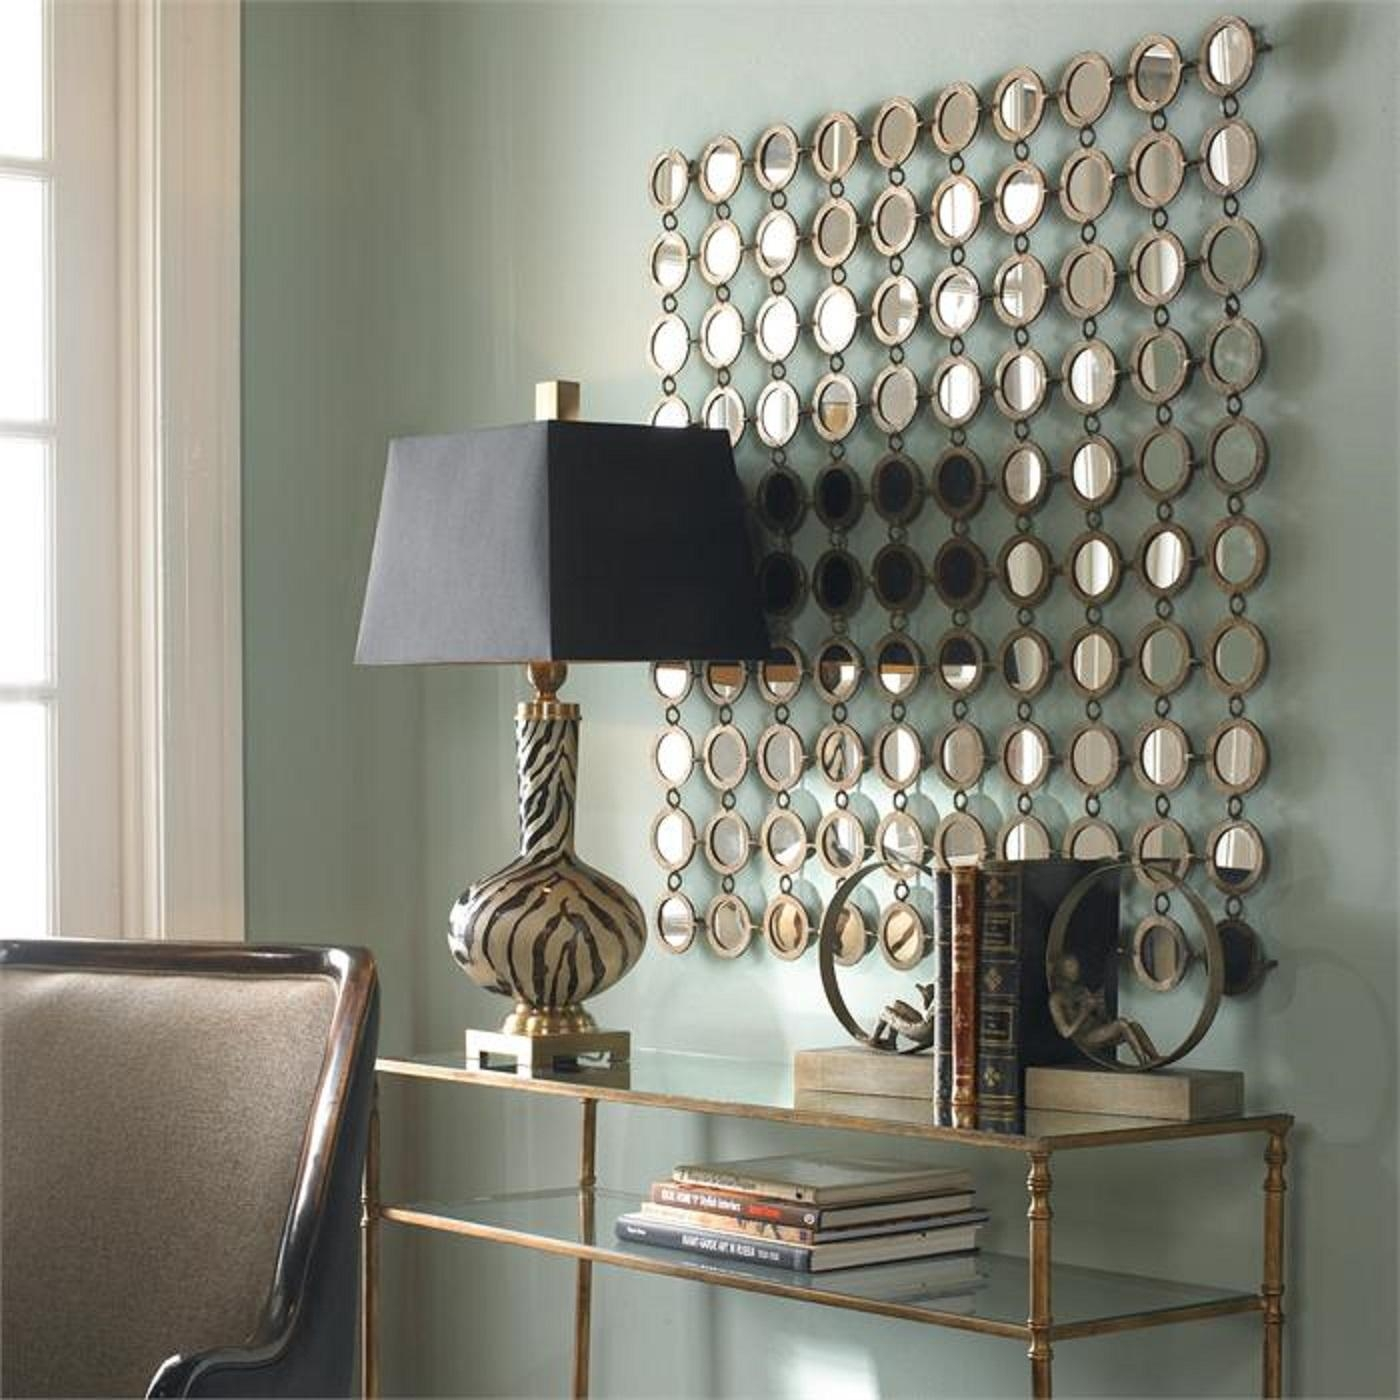 Metal Mirror Wall Decor | Jeffsbakery Basement & Mattress Pertaining To Antique Round Mirrors For Walls (Image 14 of 20)